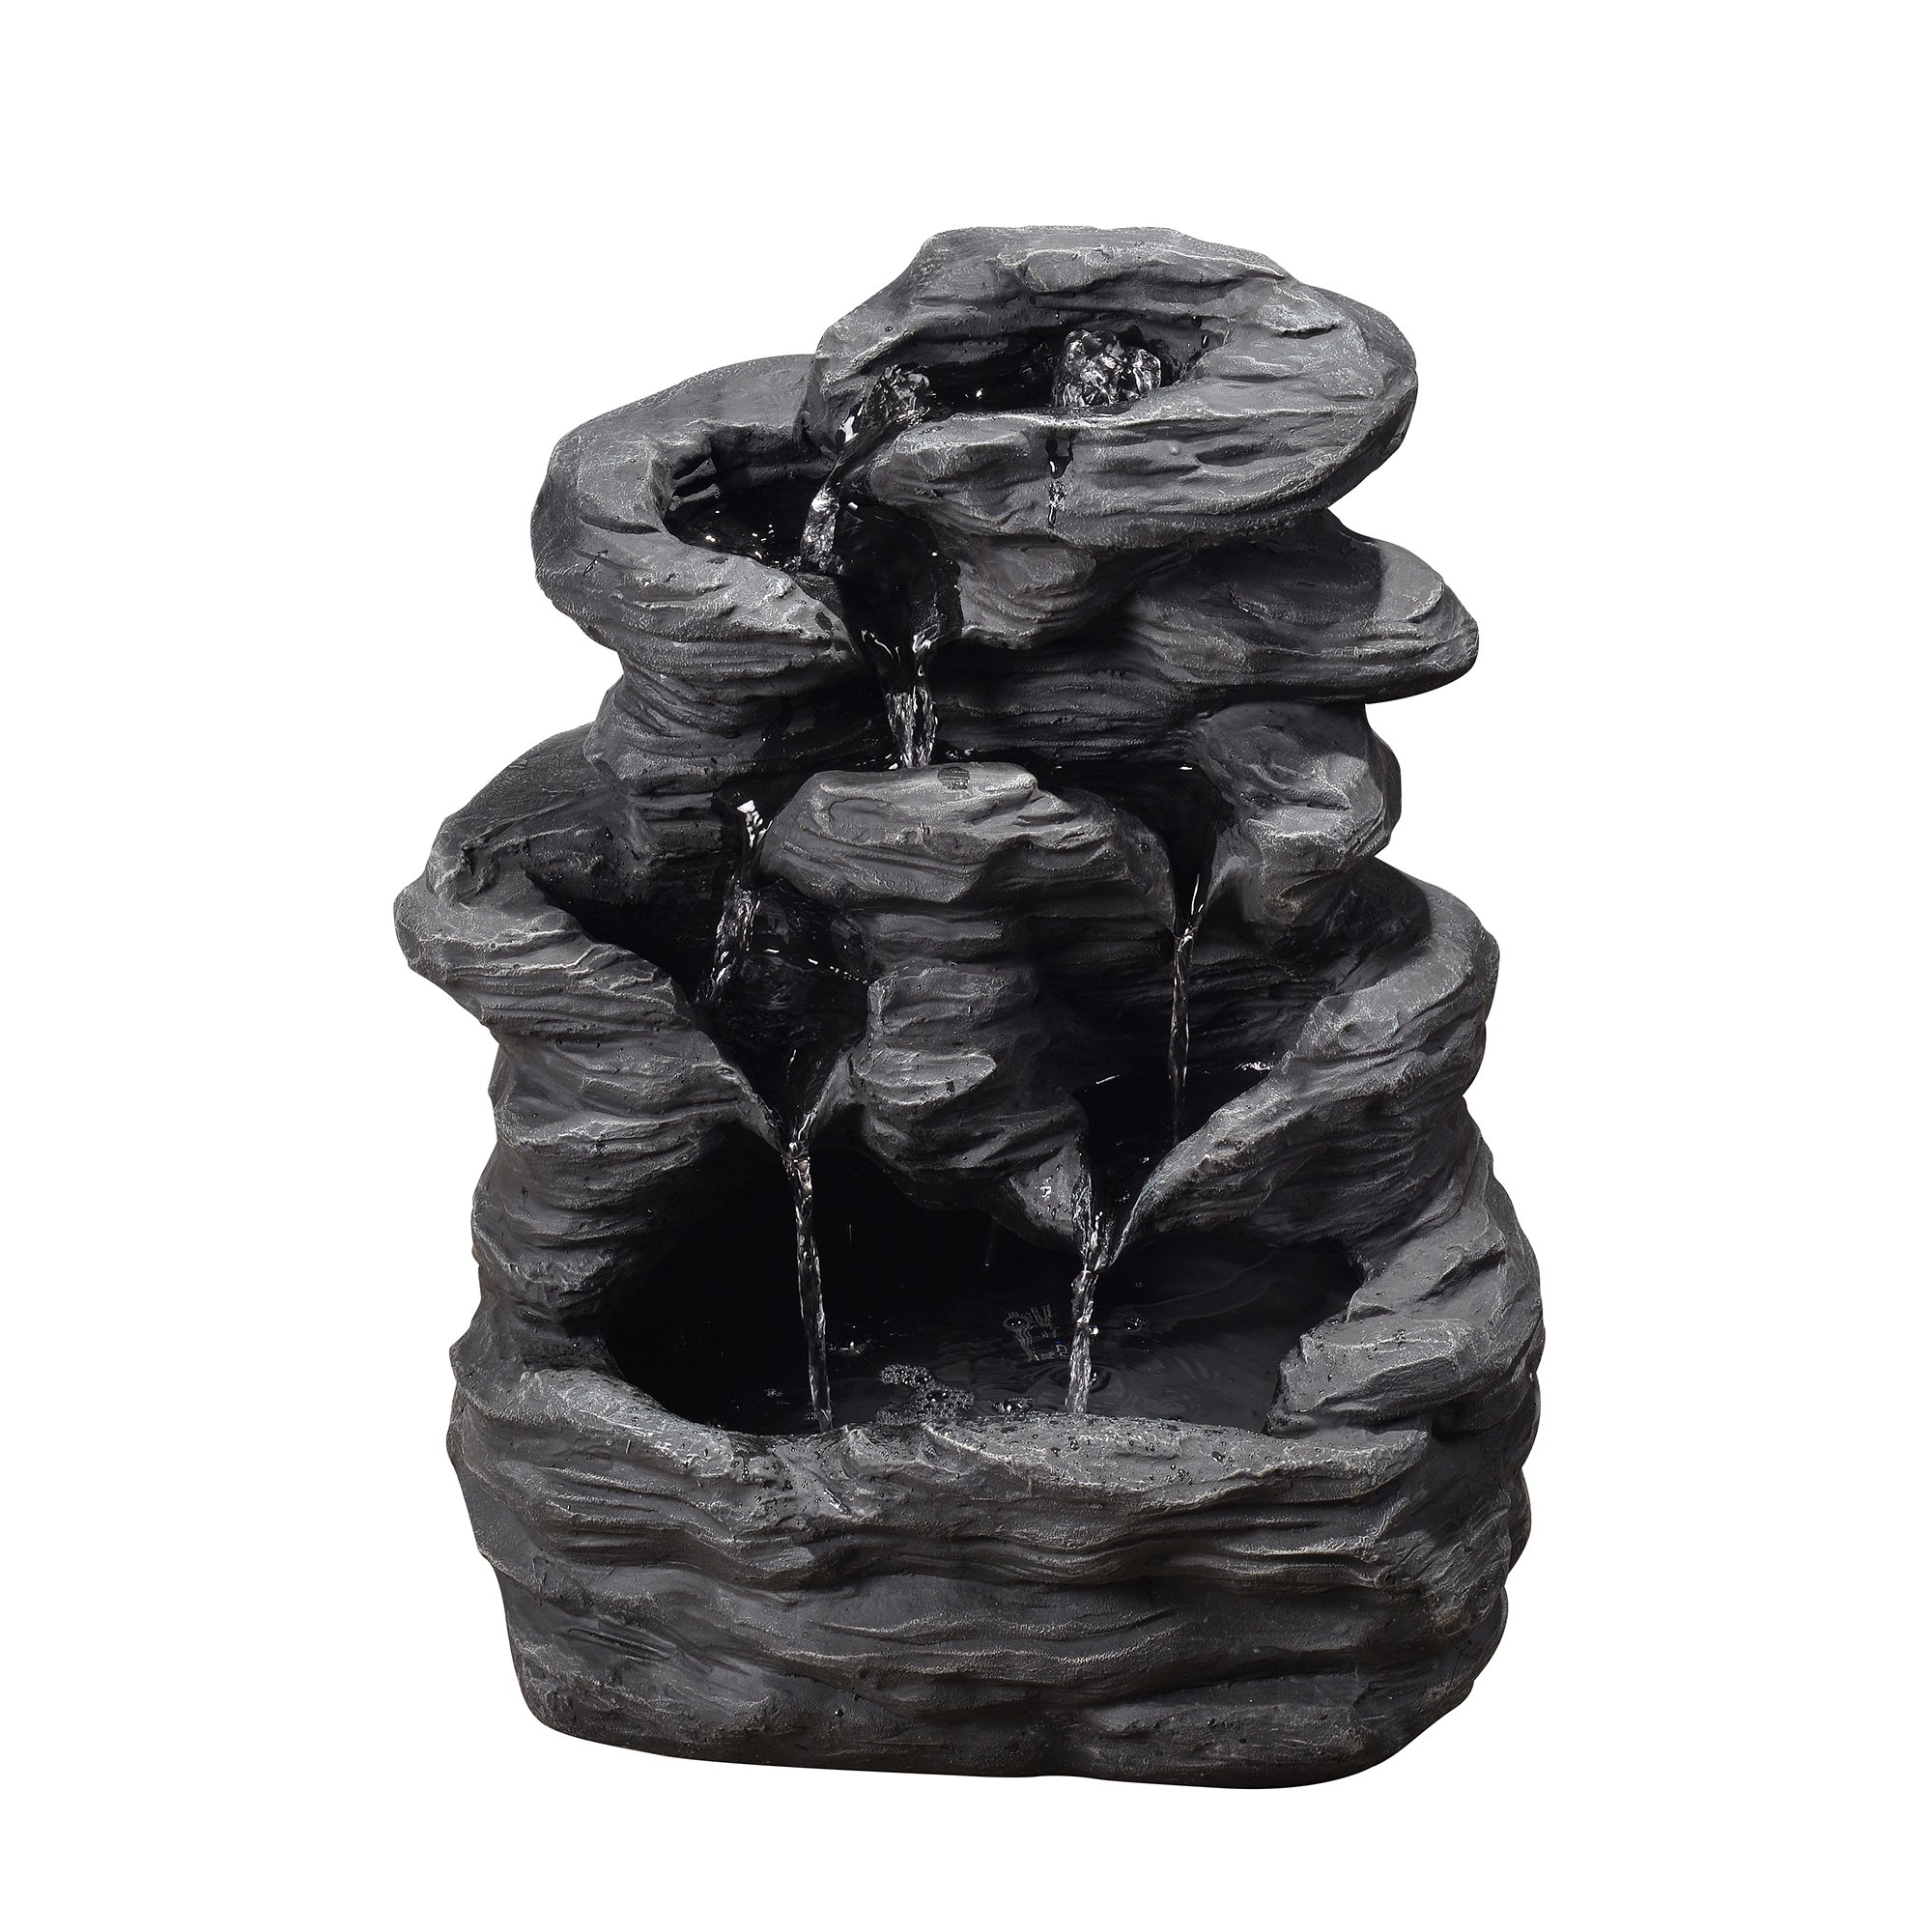 Peaktop VFD8302 Outdoor Tiered Stone Slate Fountain, 20'', Black